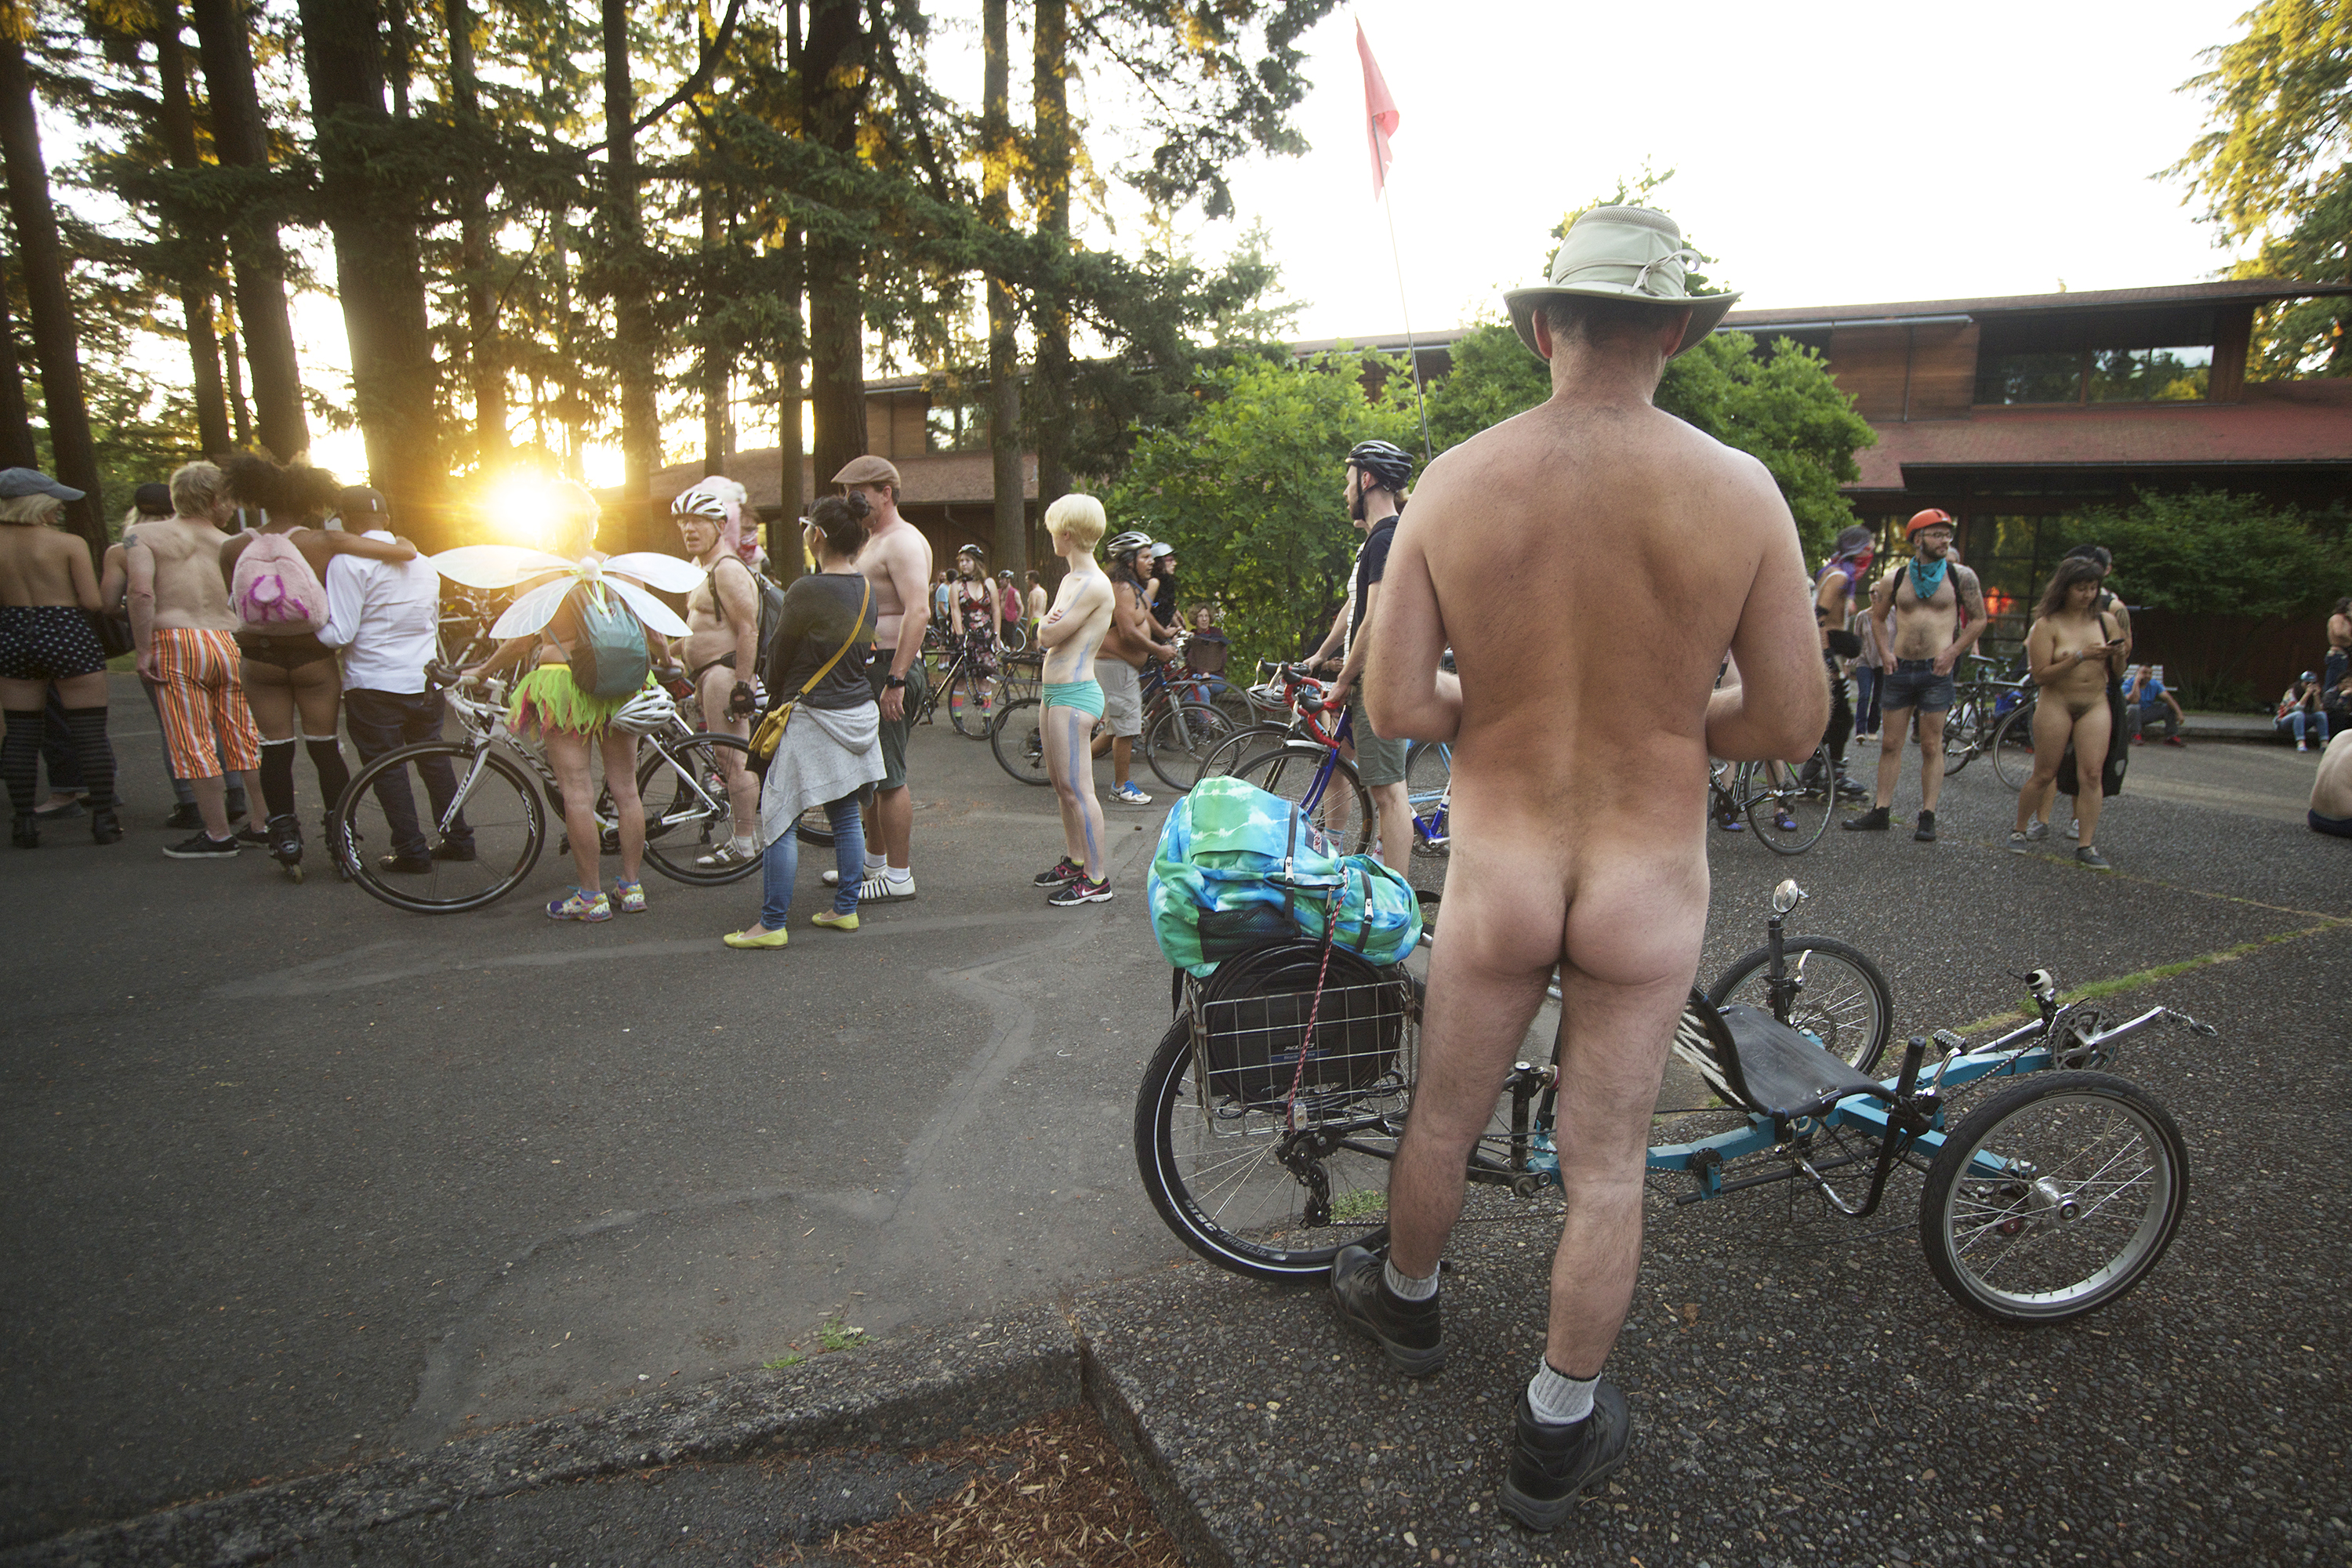 WNBR_WorldNakedBikeRide2016_JeffWalls_DSC4188